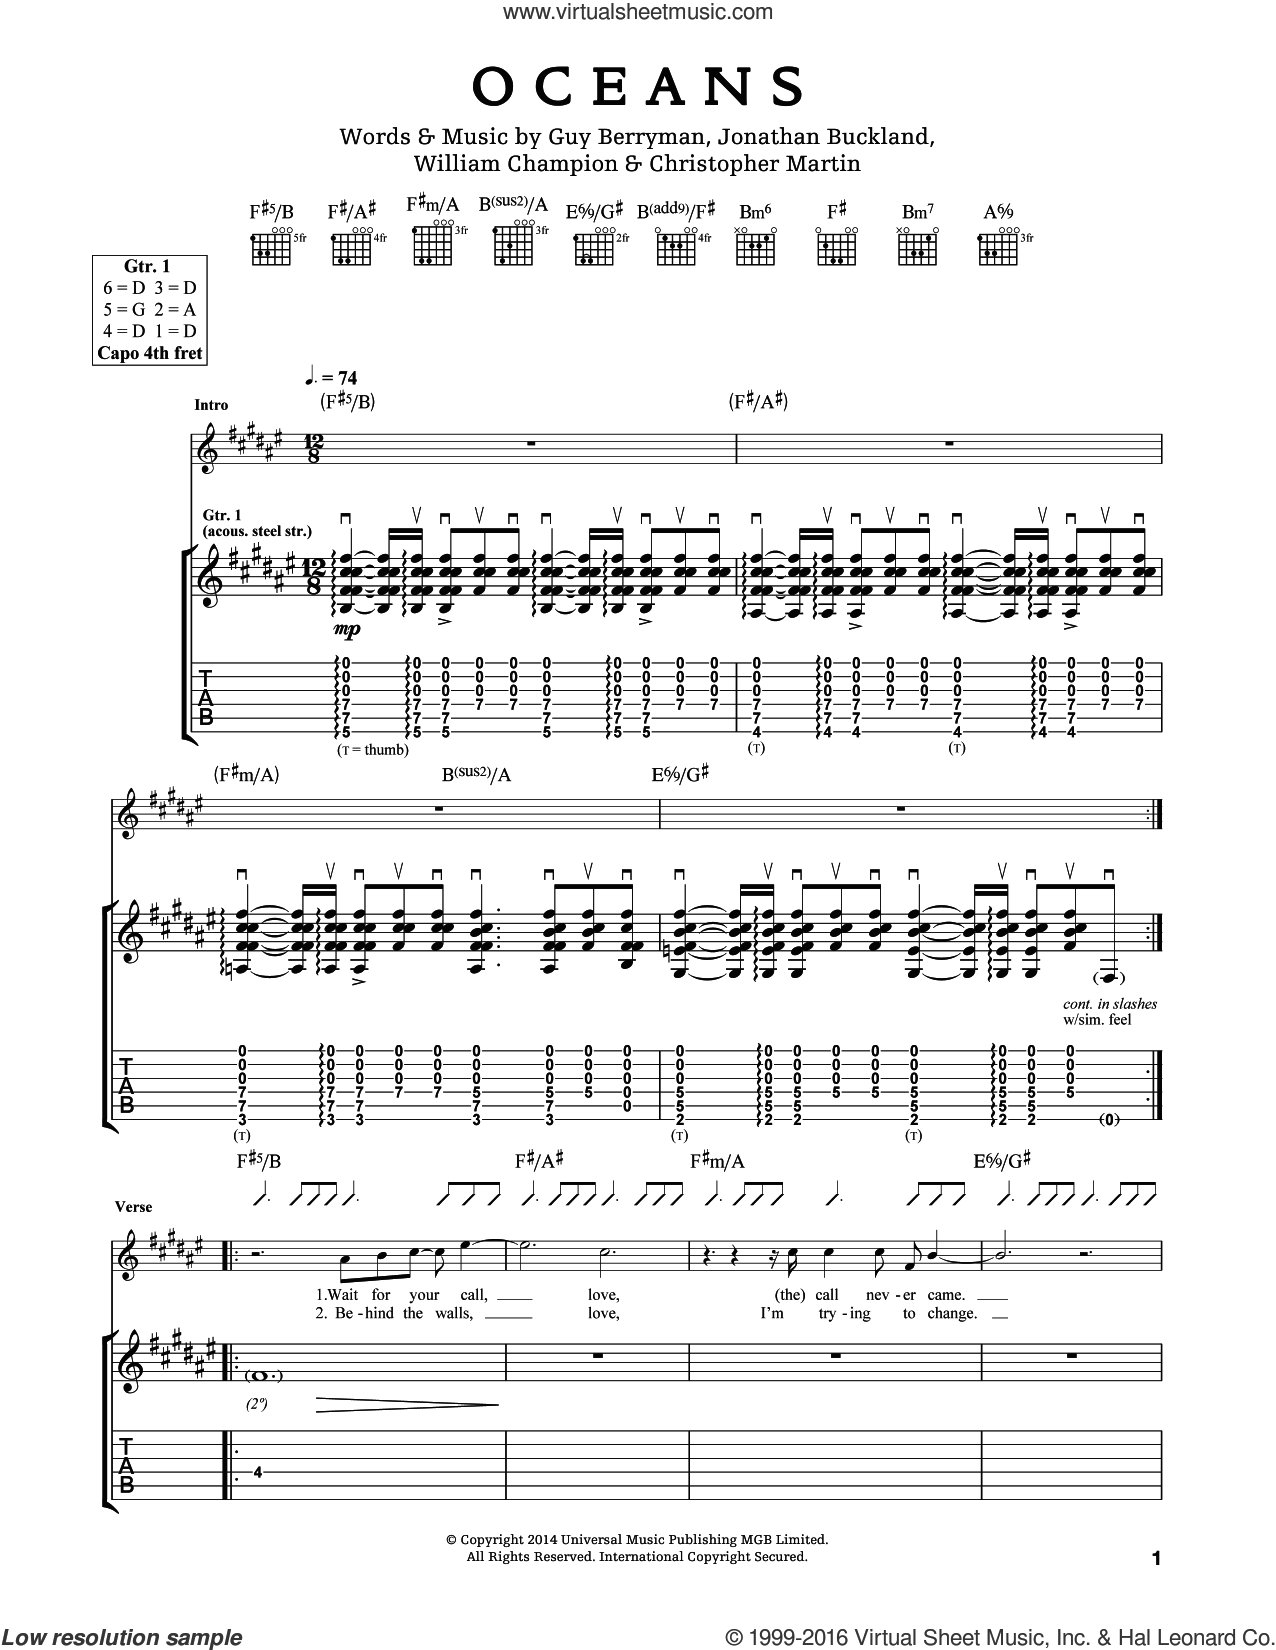 Oceans sheet music for guitar (tablature) by Guy Berryman, Coldplay, Chris Martin, Jon Buckland and Will Champion, intermediate skill level